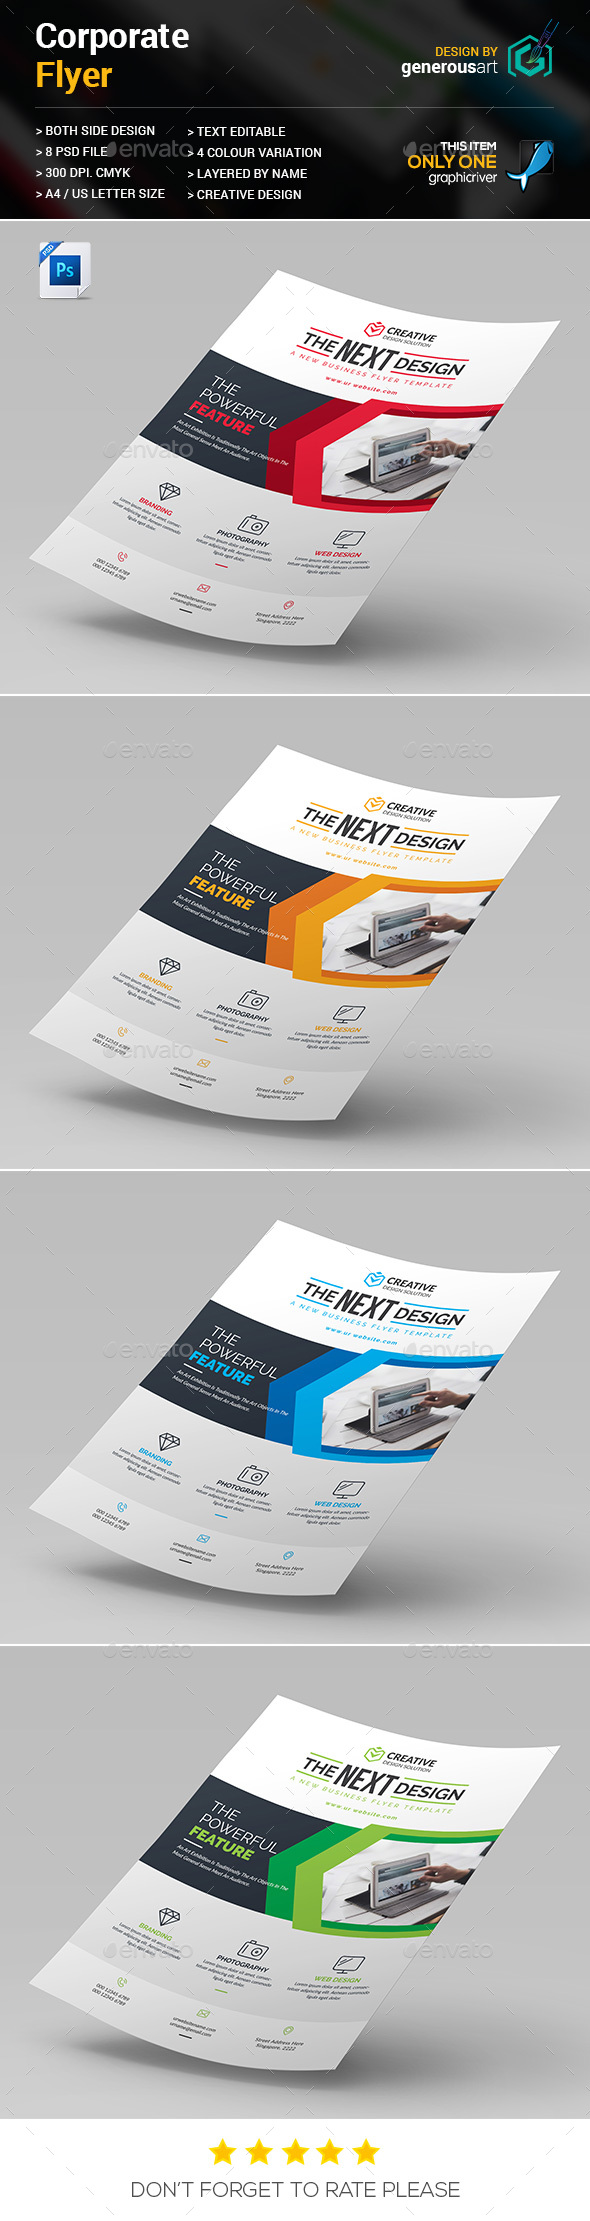 Business Flyers - Corporate Flyers